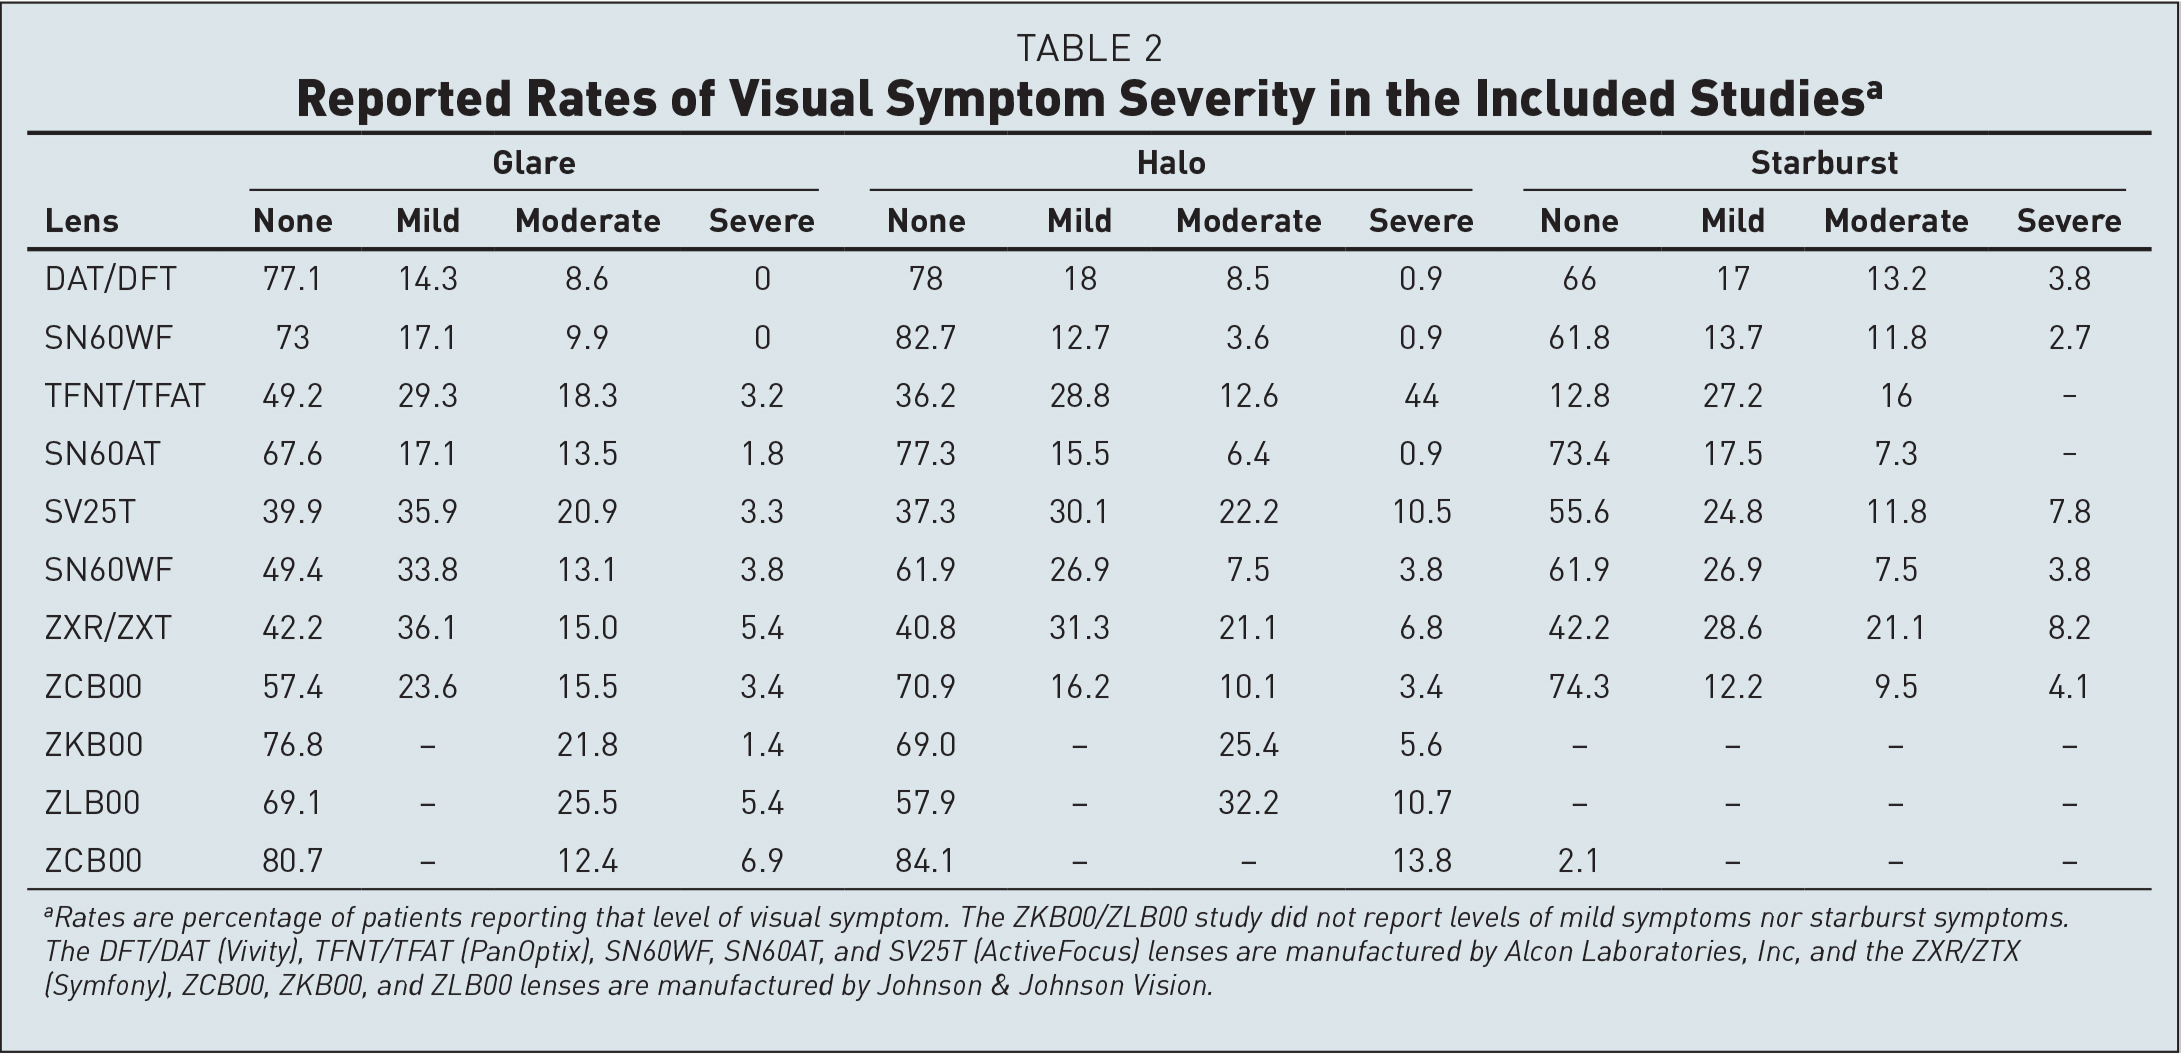 Reported Rates of Visual Symptom Severity in the Included Studiesa